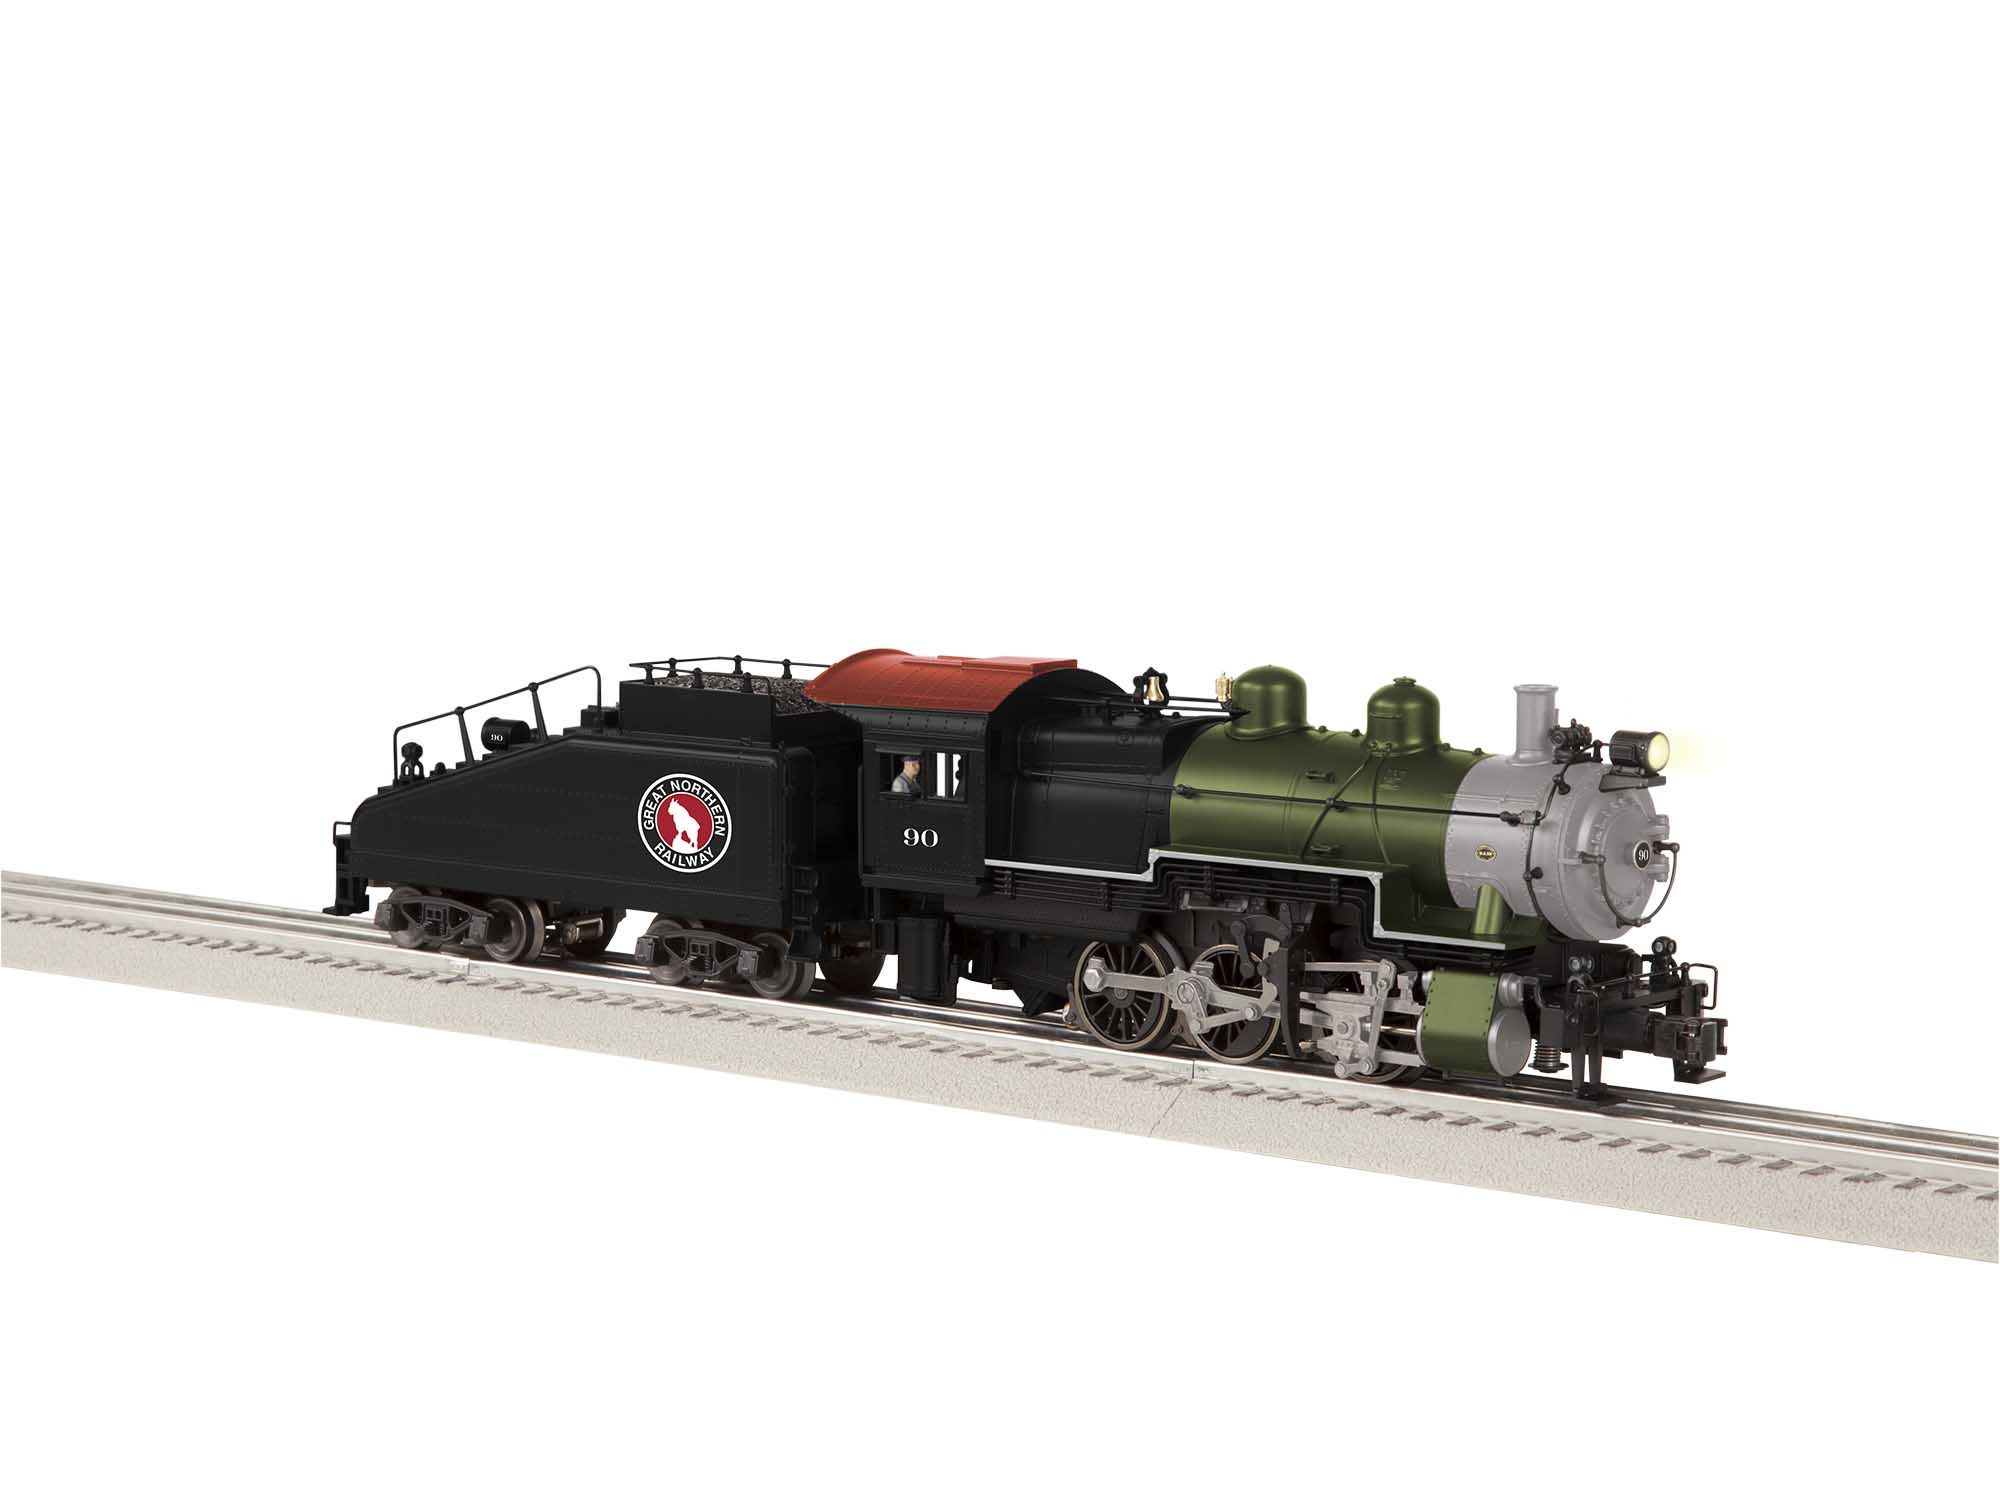 Lionel 2031390 O B6sb Great Northern GN #90